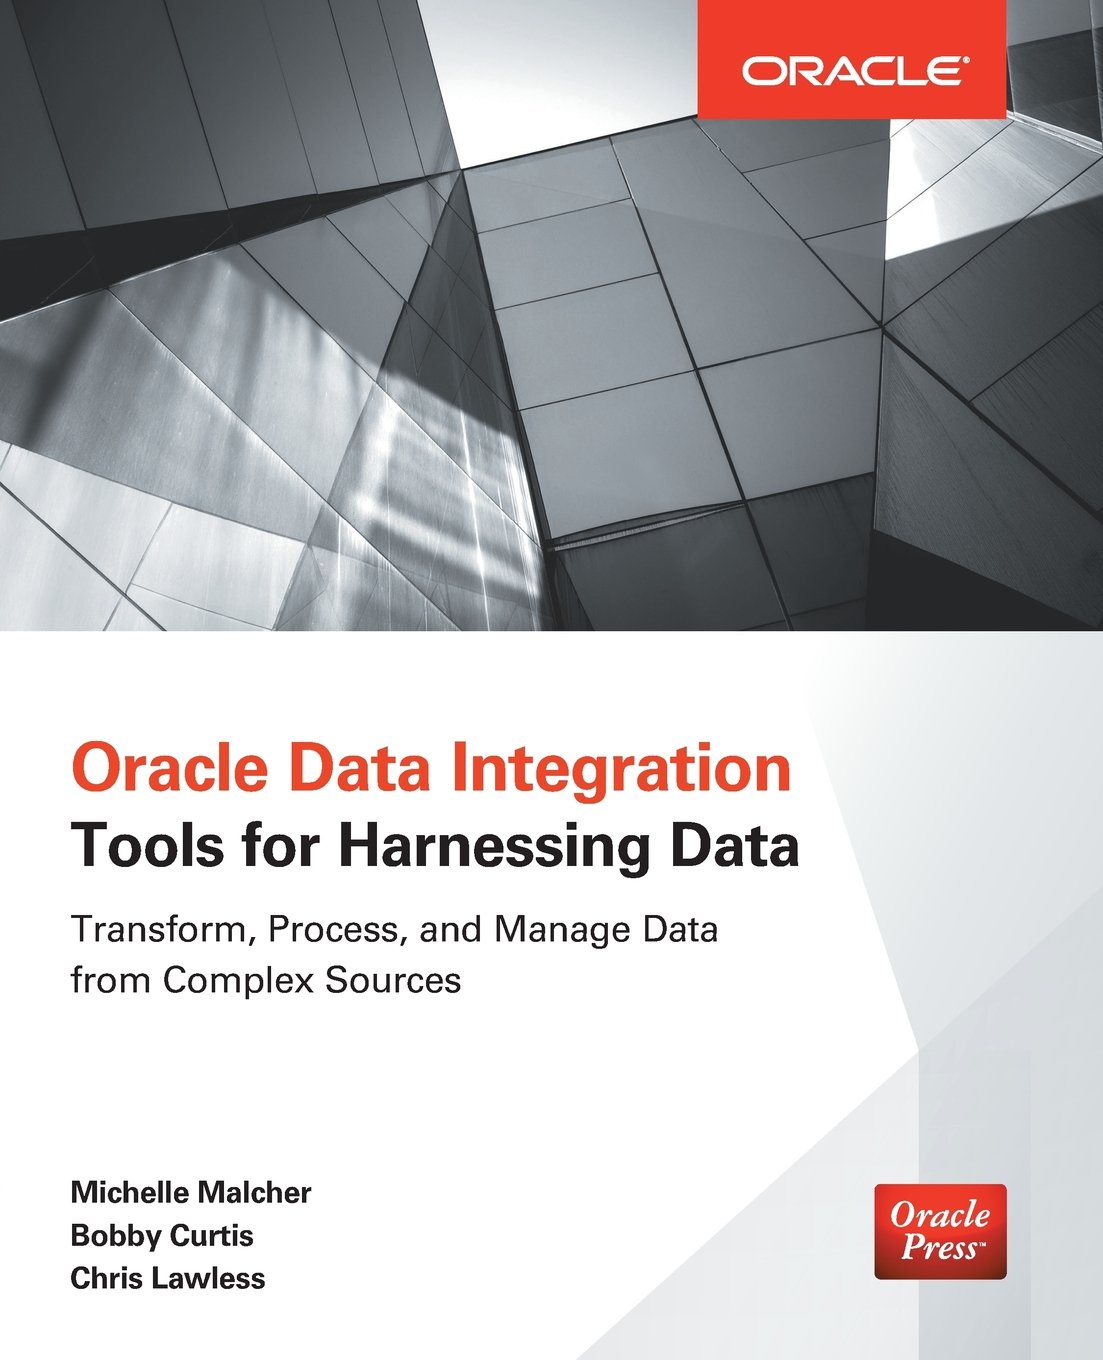 Buy oracle data integration tools for harnessing data book online buy oracle data integration tools for harnessing data book online at low prices in india oracle data integration tools for harnessing data reviews baditri Gallery